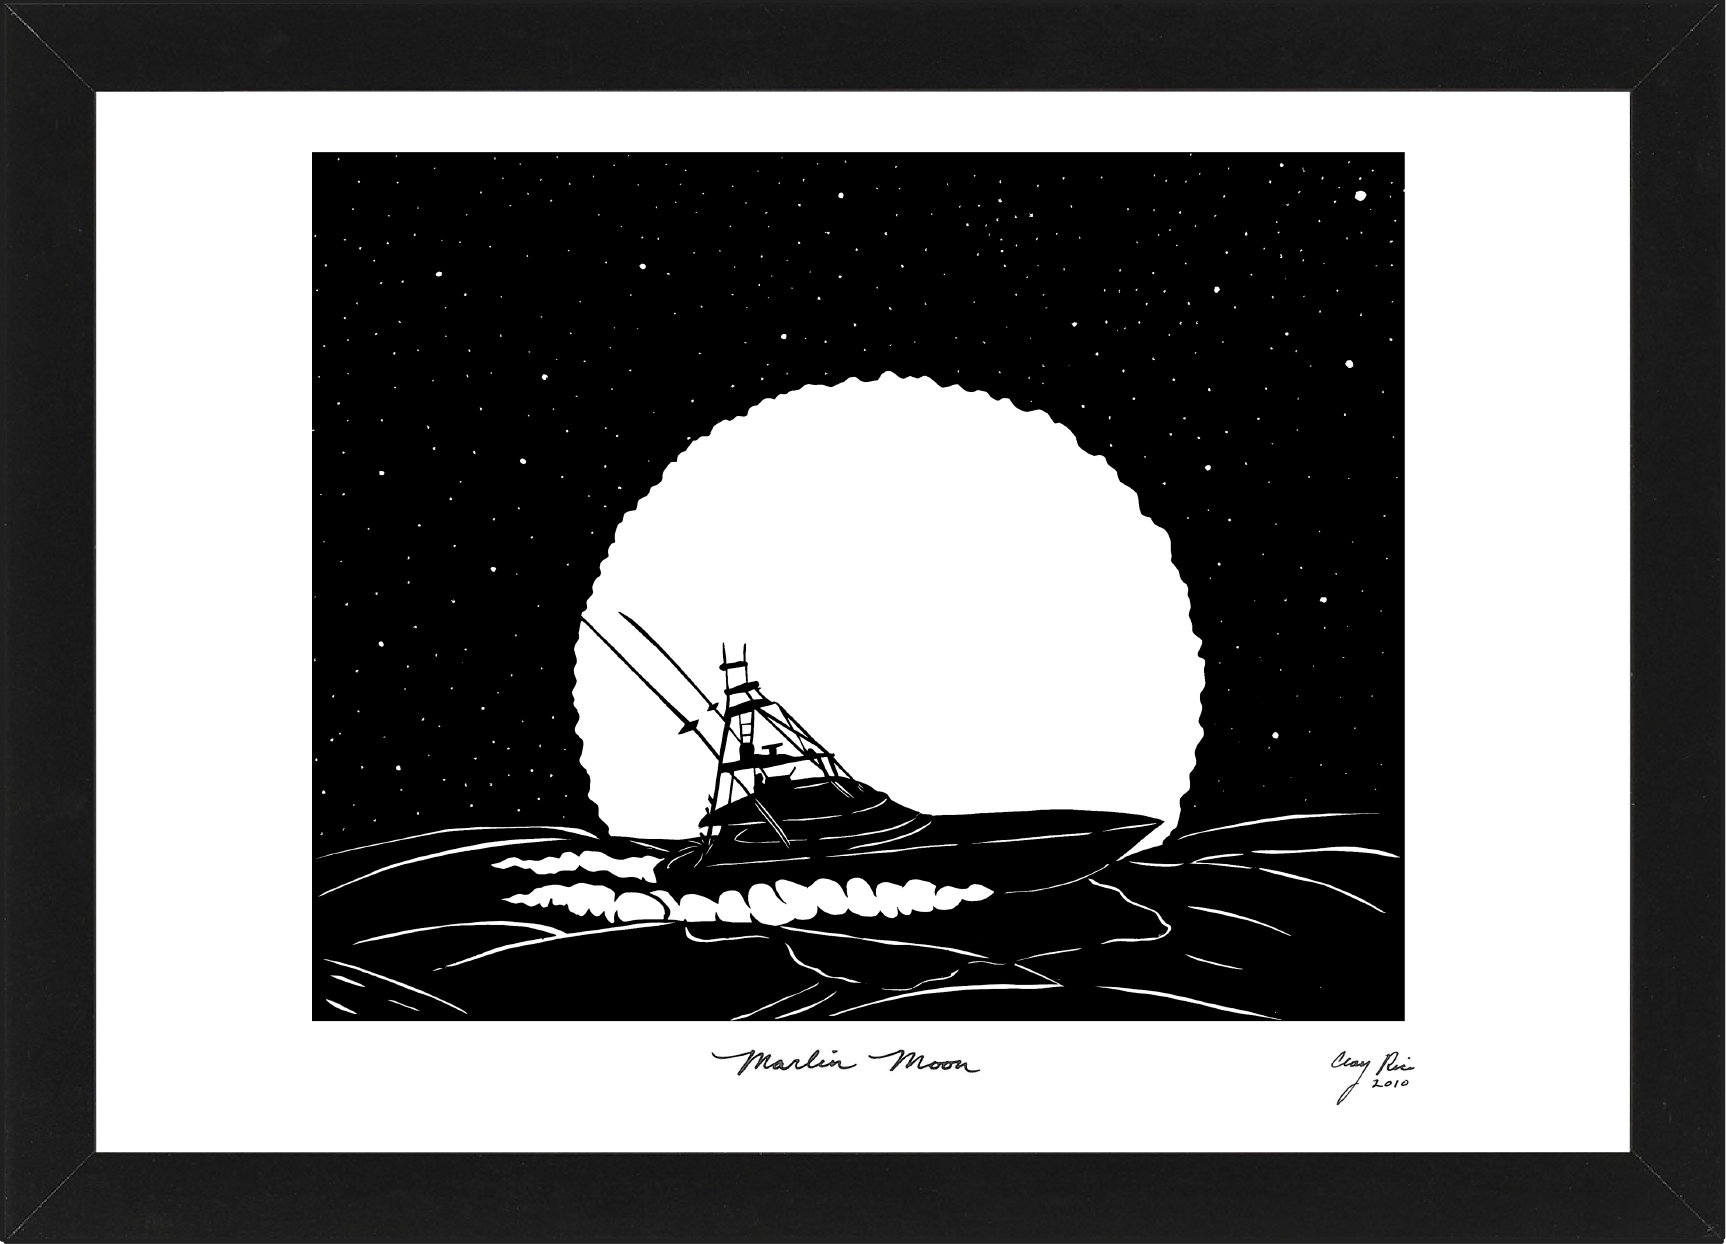 cut out of ship on the ocean at night